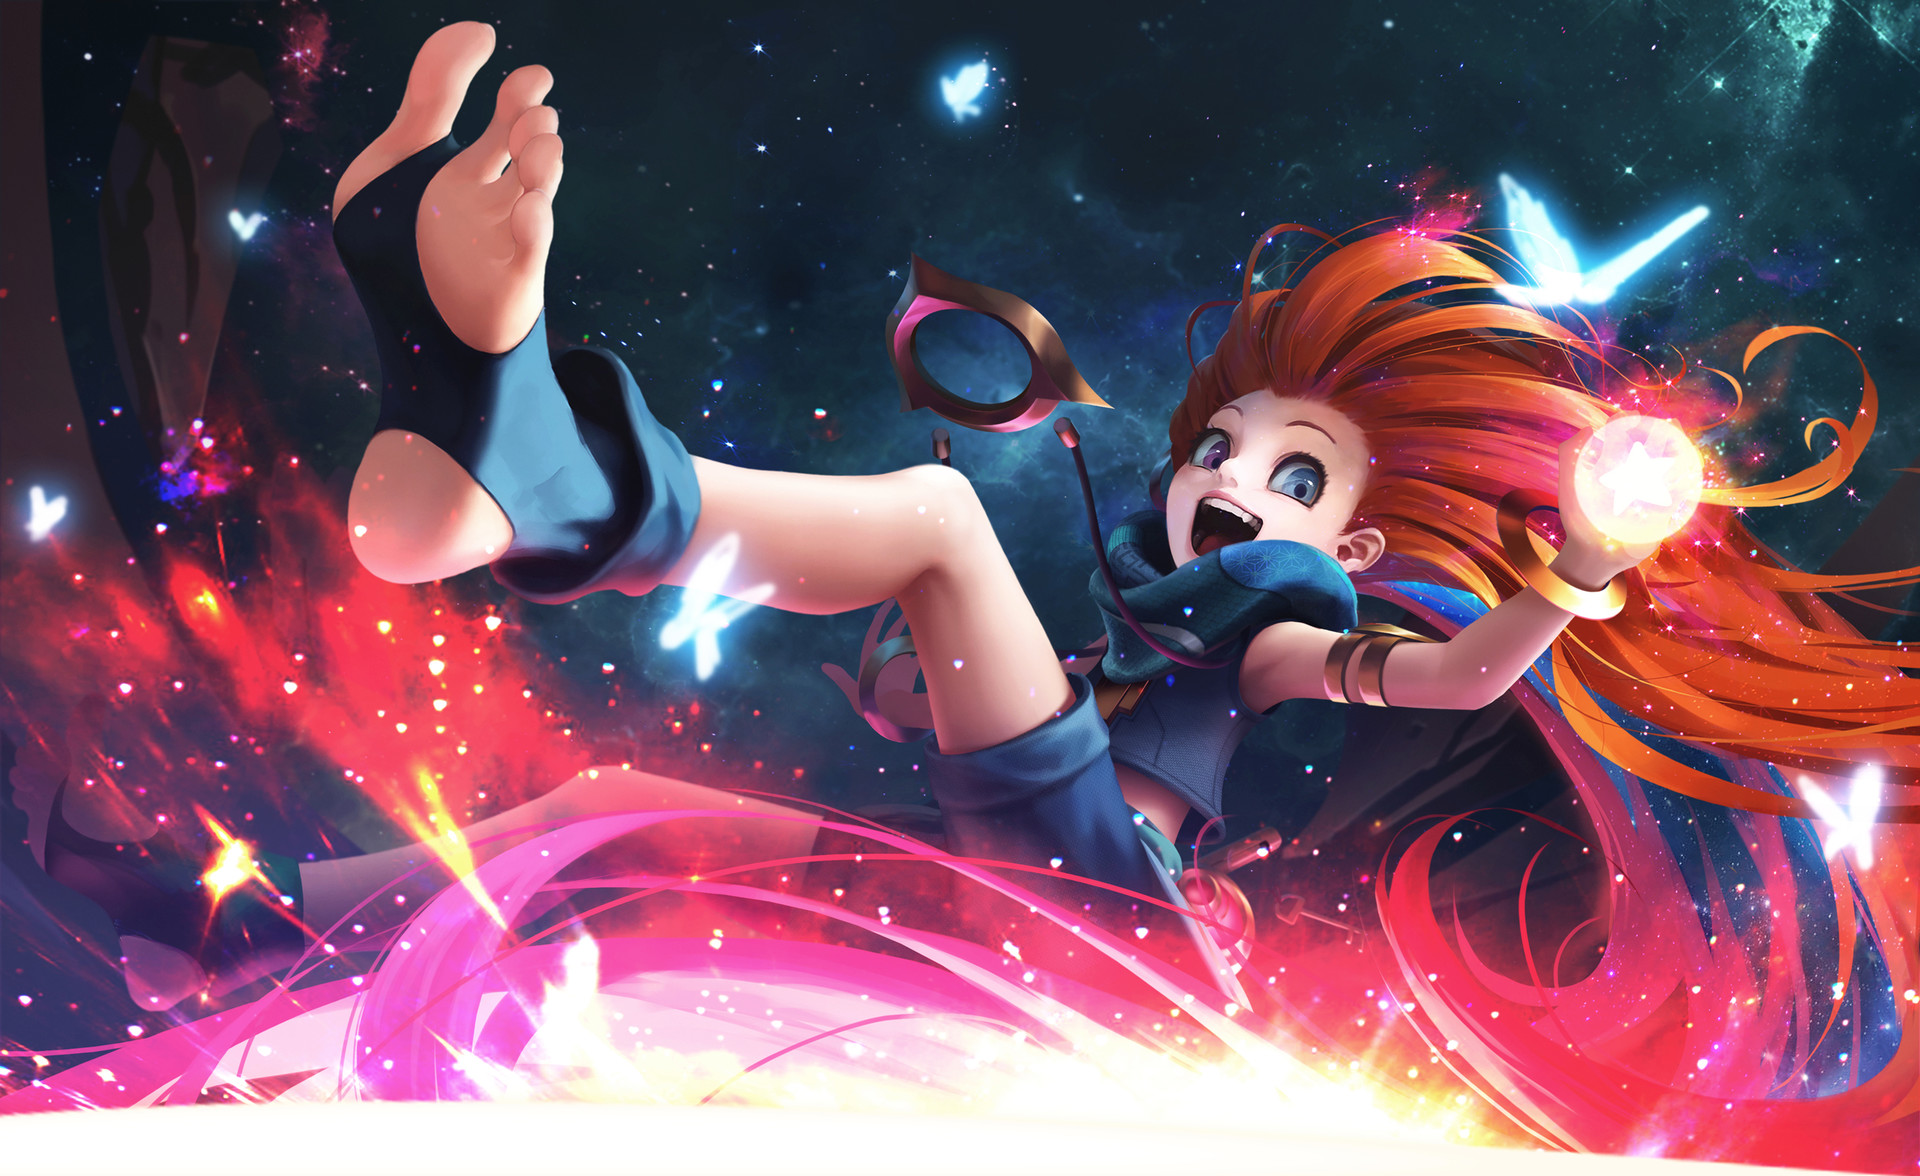 1920x1080 zoe league of legends hd laptop full hd 1080p hd - Zoe wallpaper ...